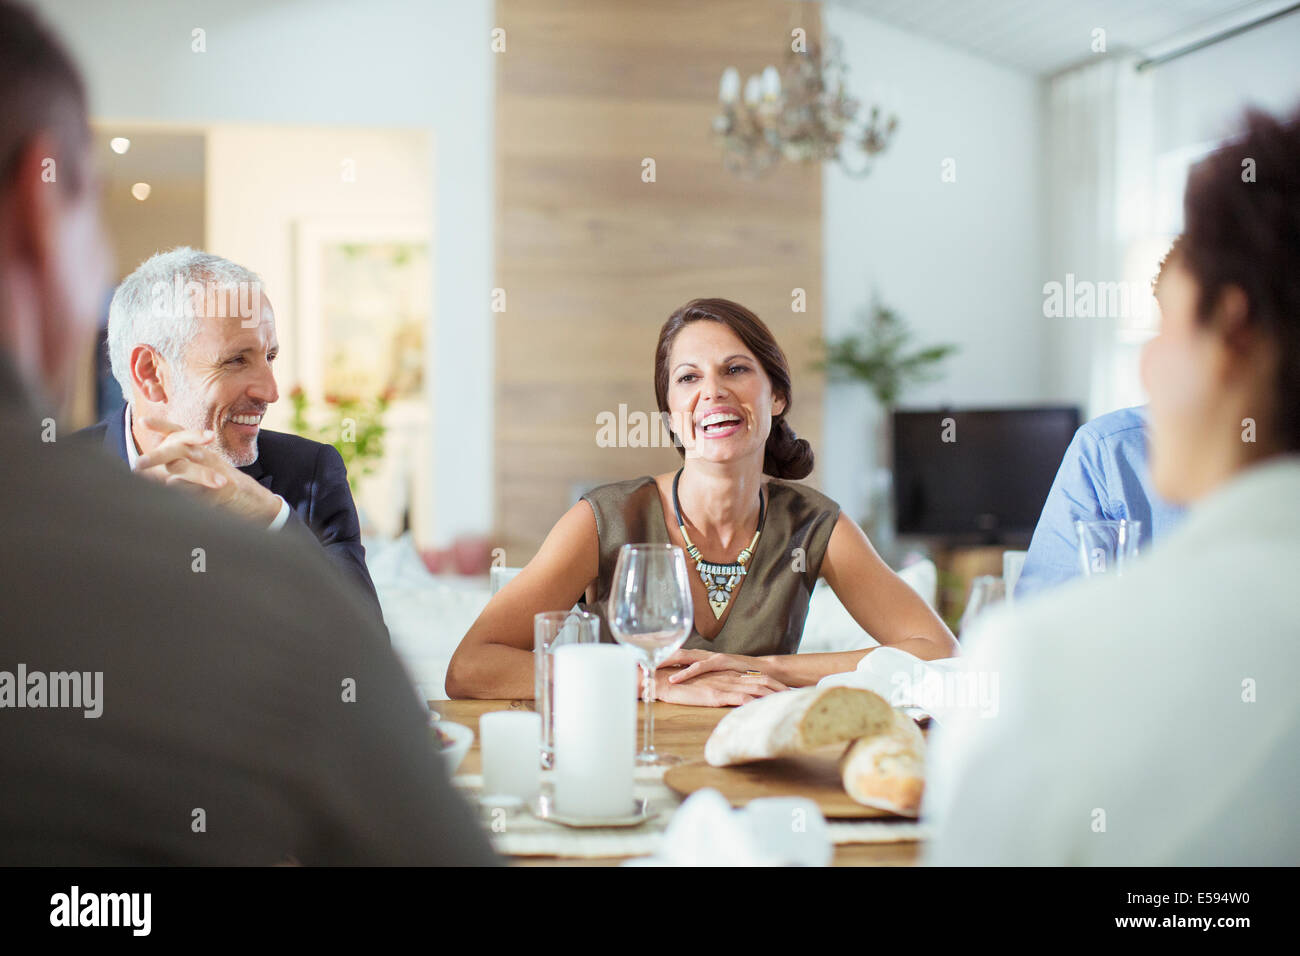 Les gens parler at dinner party Photo Stock